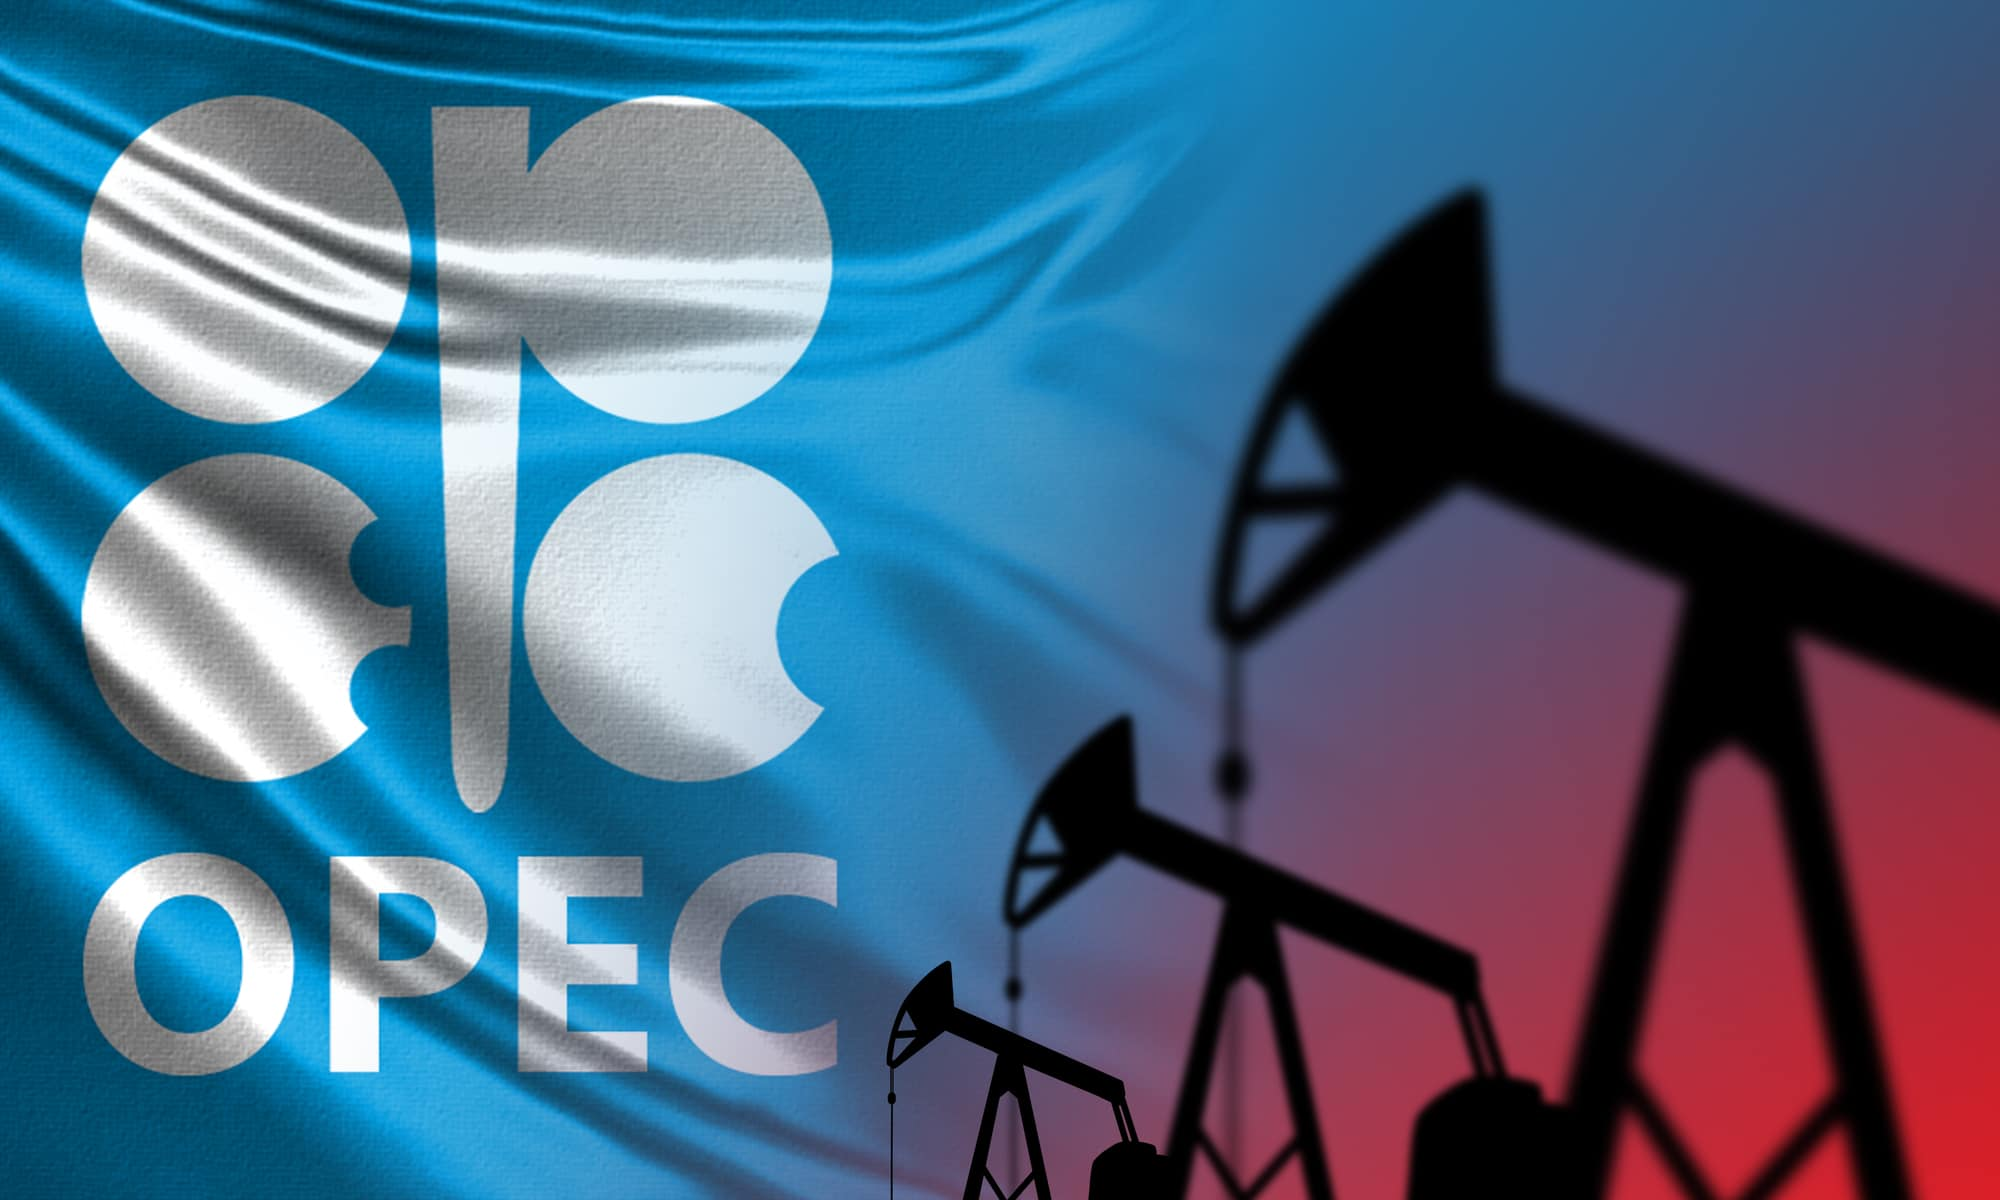 OPEC+ may extend oil production cuts in 2021